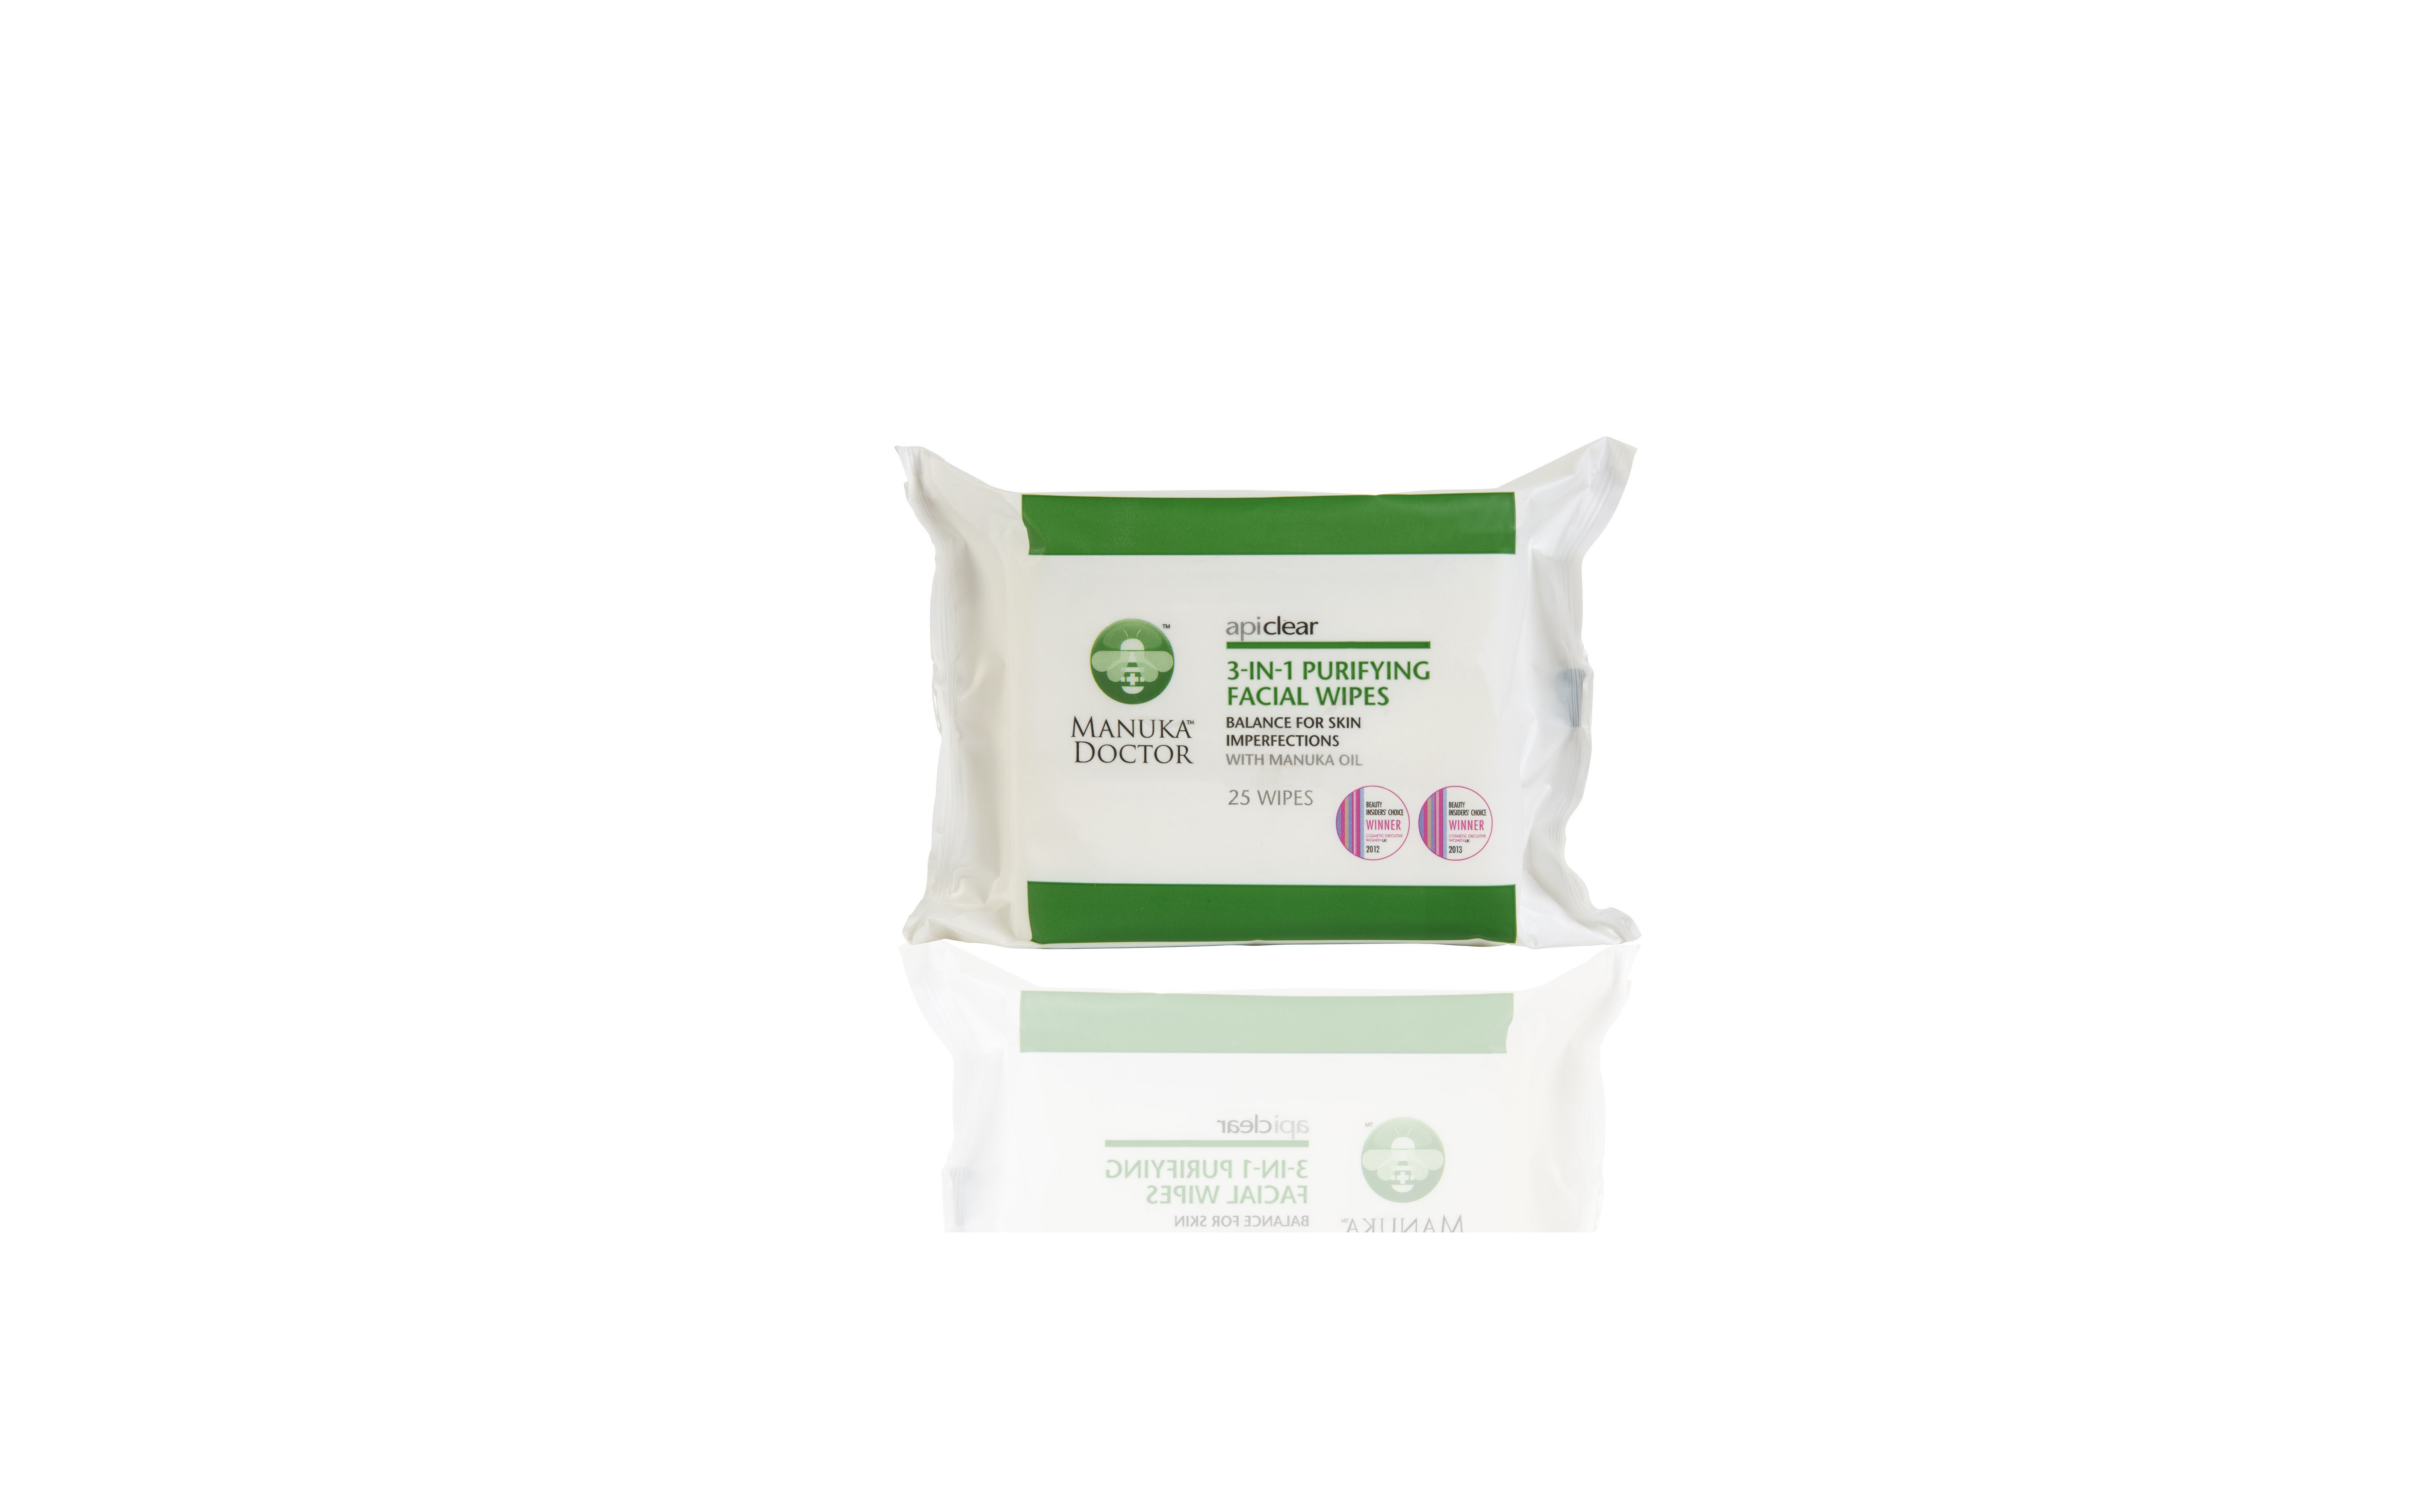 Manuka Doctor 3-in-1 Purifying Facial Wipes